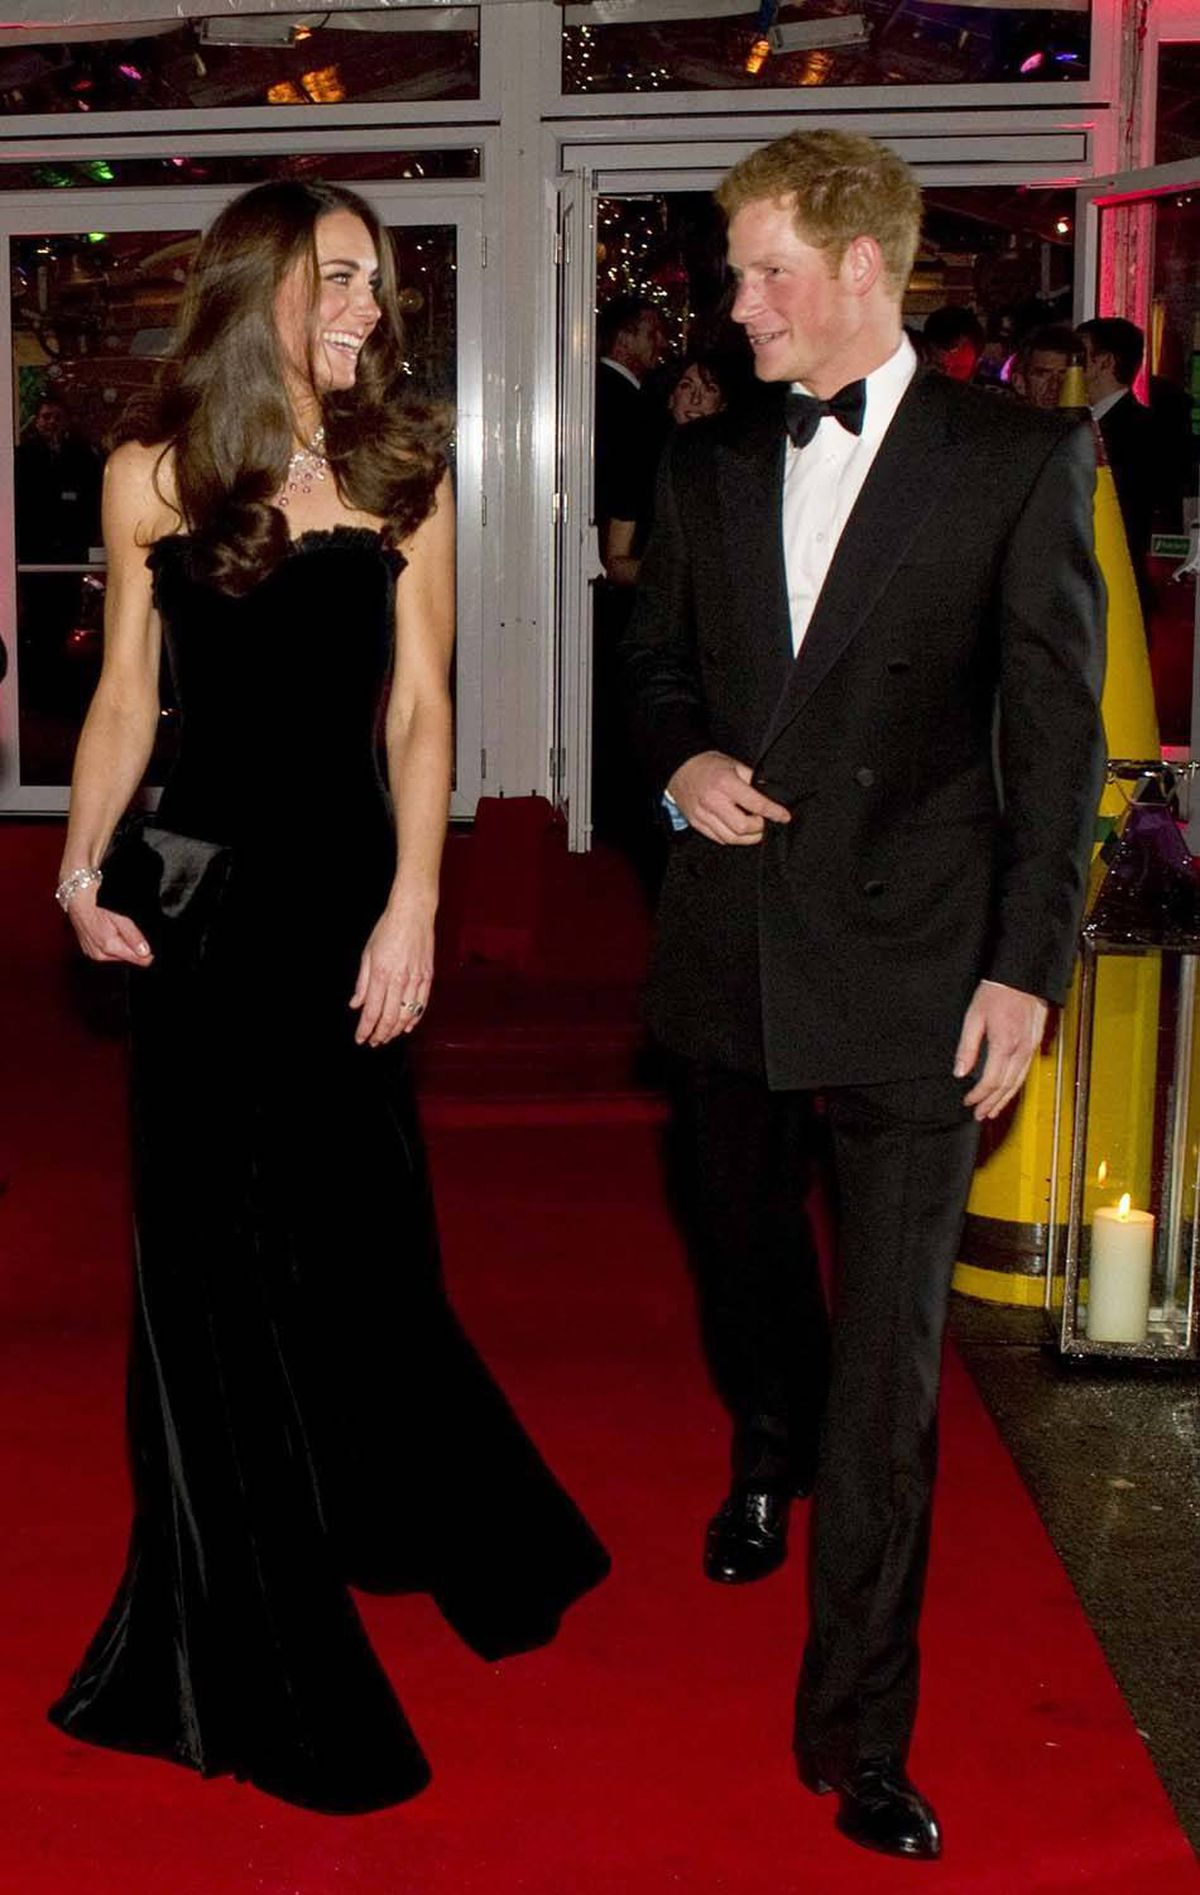 BROTHER-IN-LAW Catherine, Duchess of Cambridge, and Prince Harry leave the VIP marquee during a military awards ceremony at the Imperial War Museum in London, December 19, 2011.